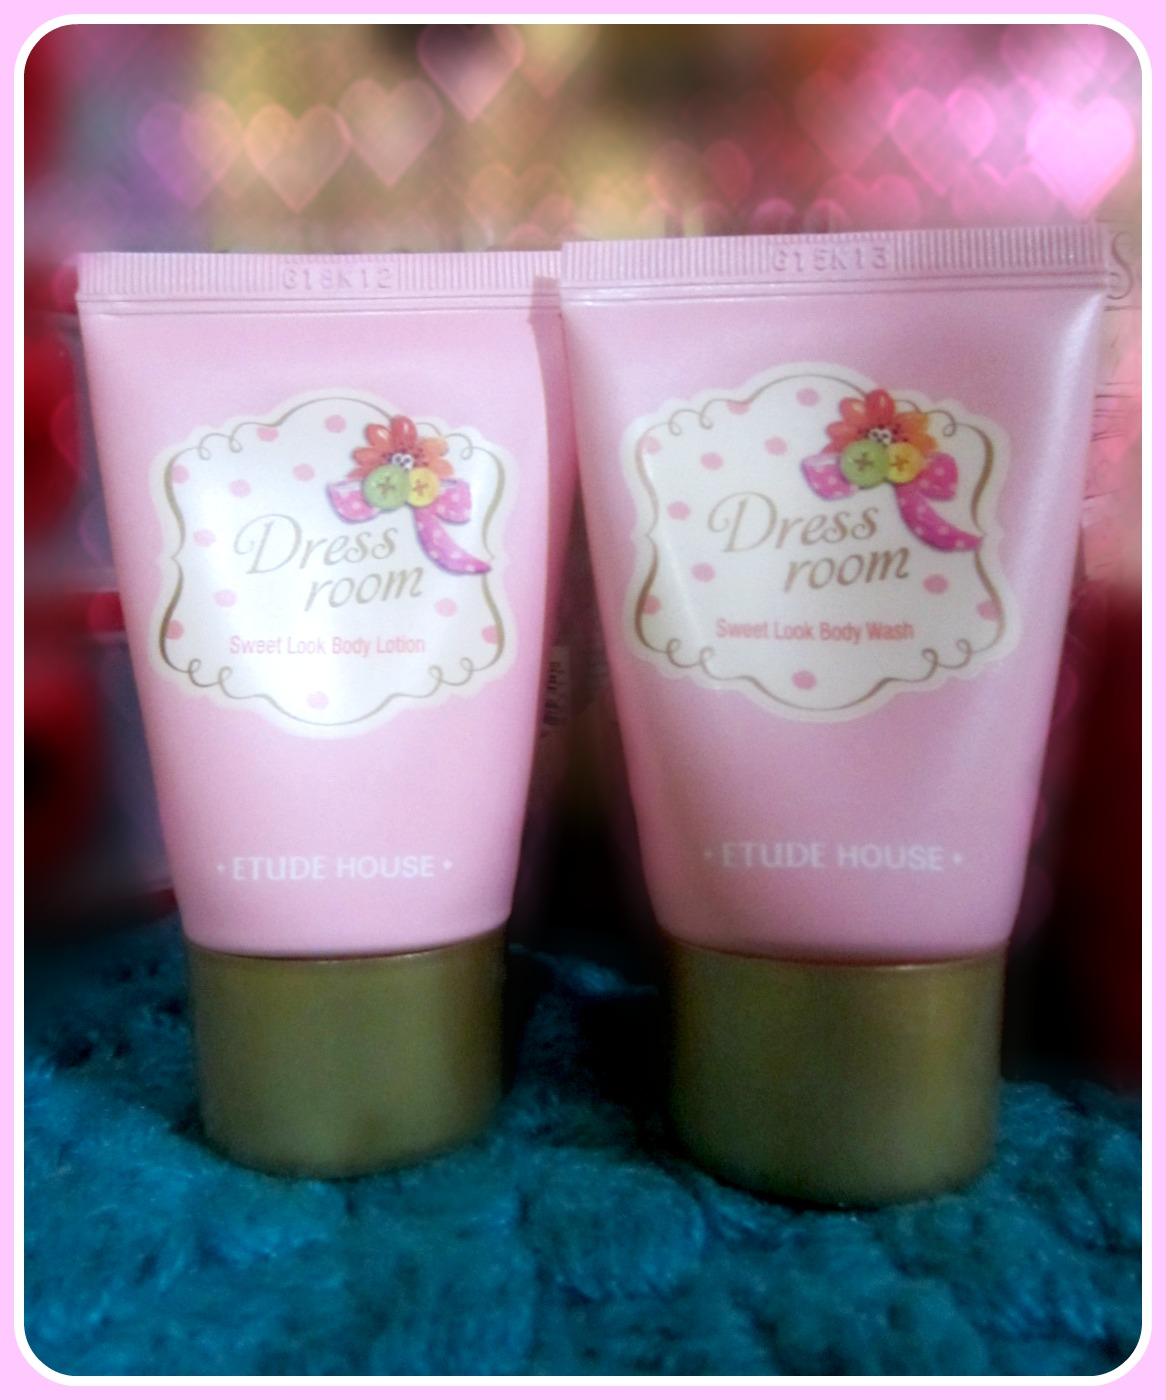 Etude House Dress Room Sweet Look Body Wash Lotion Two Paket Dan Shower Gel The Cute And Girly All Pink Packaging Is Signature Of Range One Most Famous Korean Brand